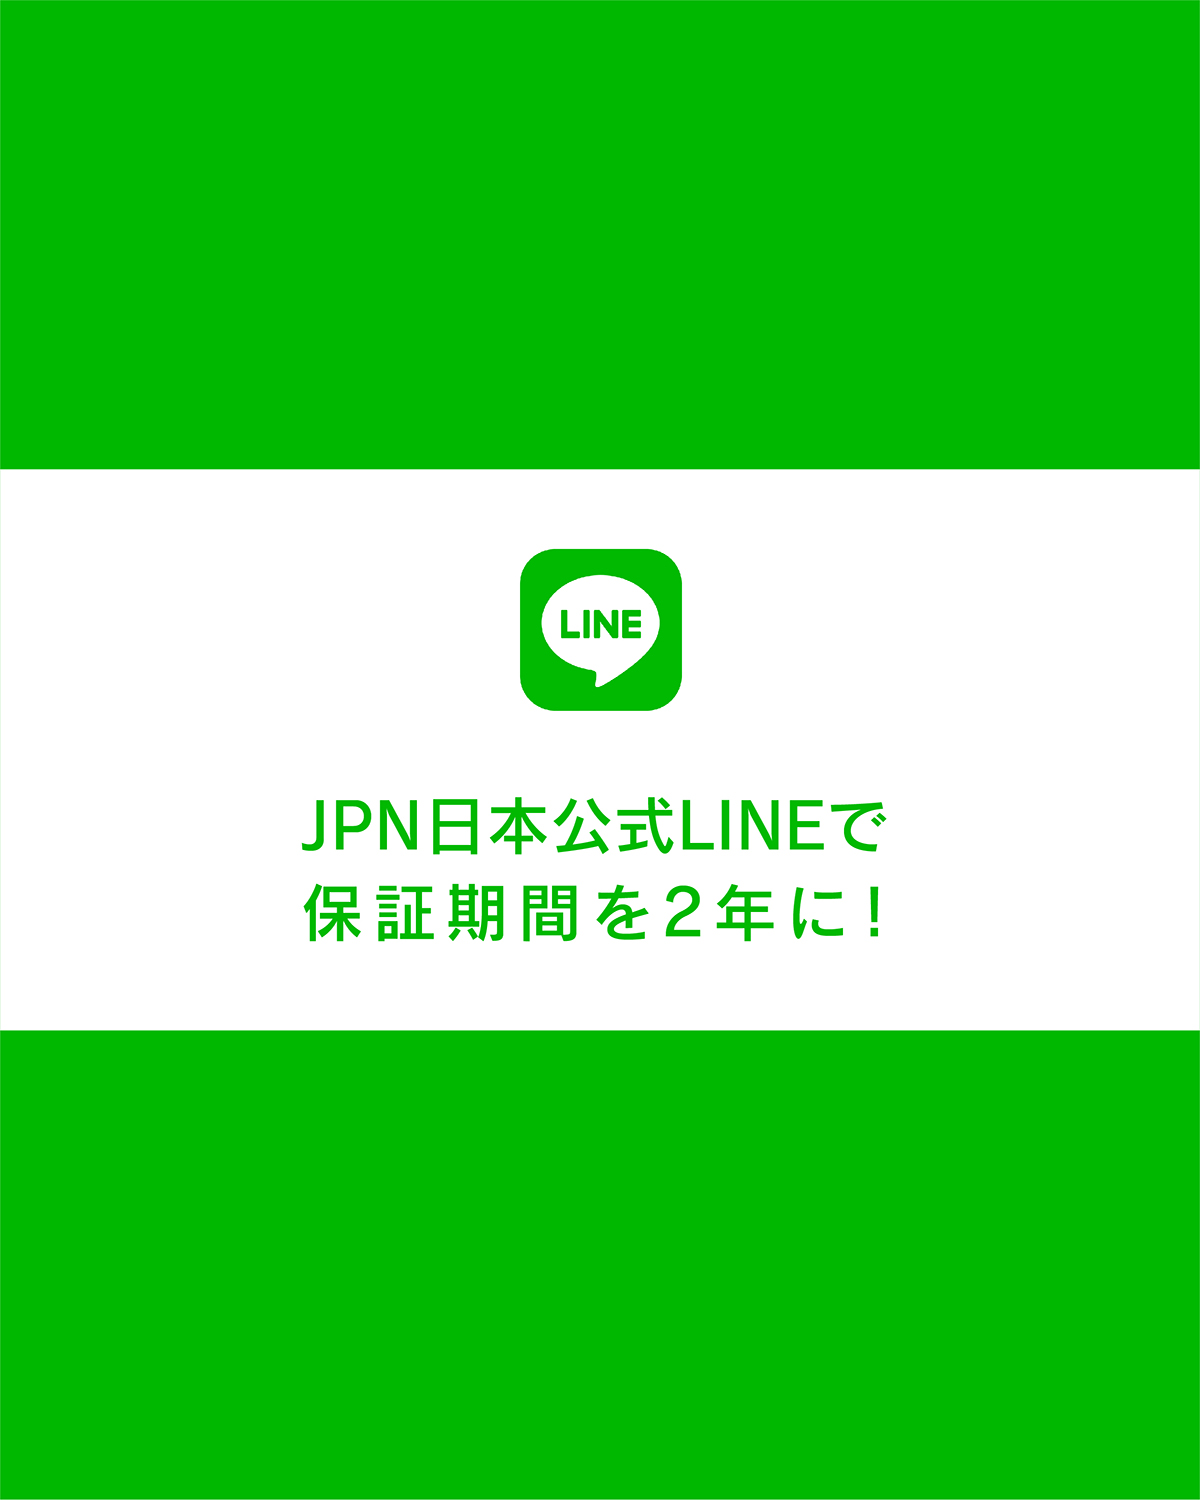 You are currently viewing JPN日本公式LINE登録で保証期間延長